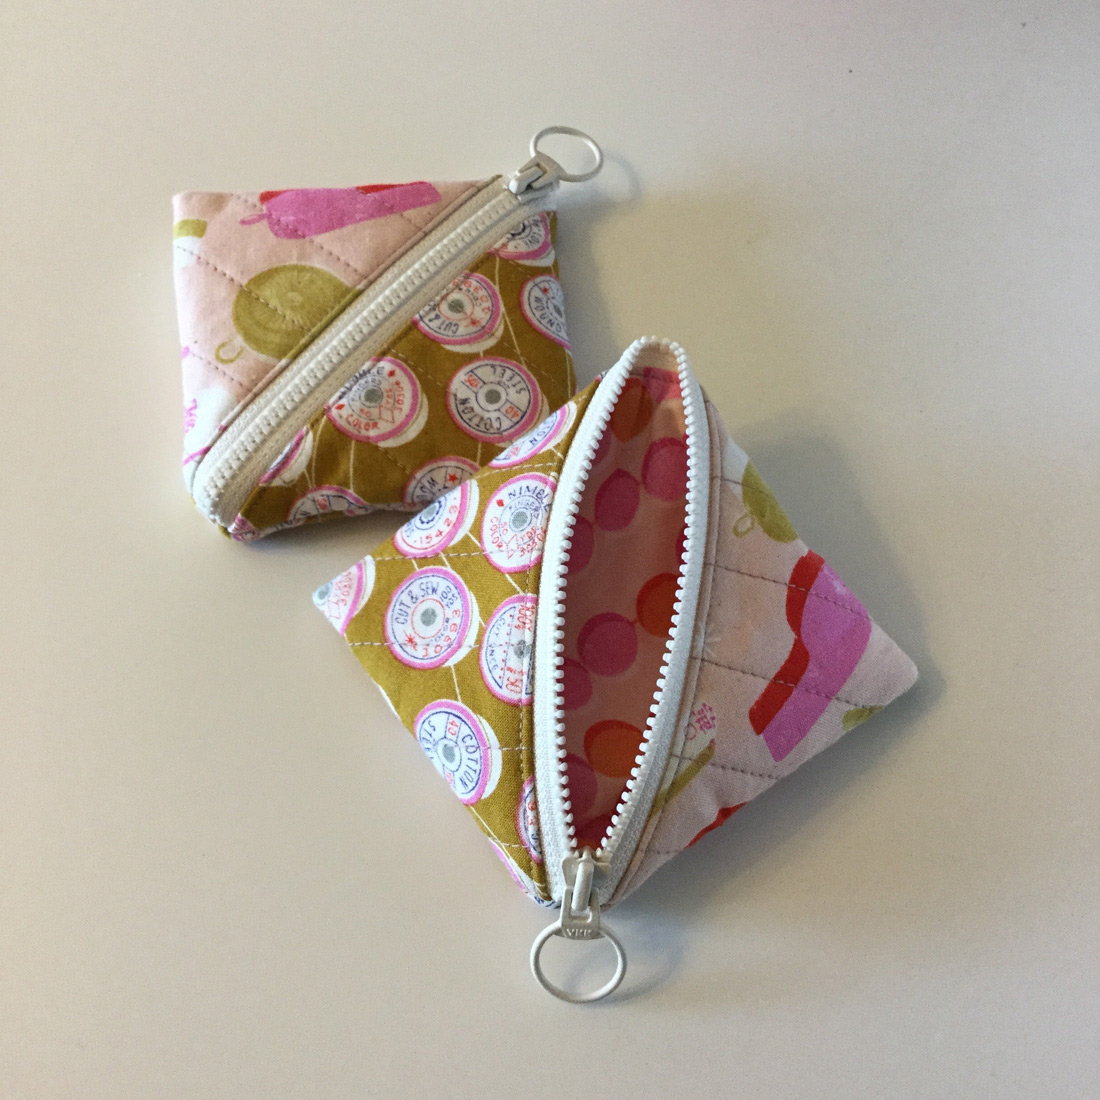 Half Square Triangle Pouch Tutorial